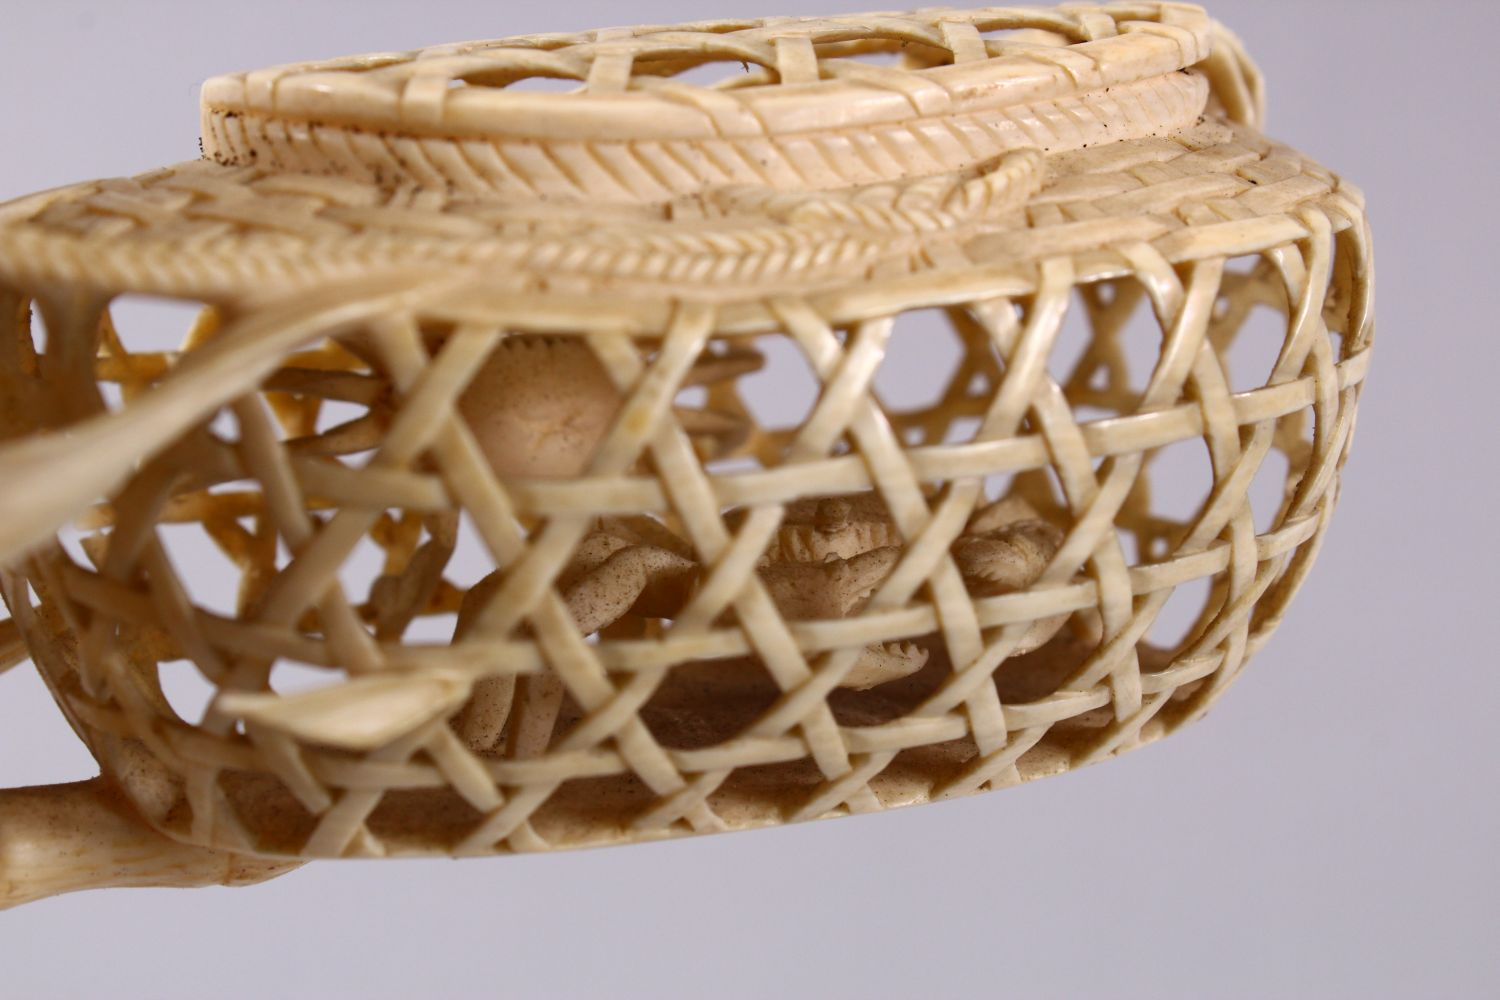 A JAPANESE MEIJI PERIOD CARVED IVORY CRAB GROUP OKIMONO - depicting a basket of crabs with three - Image 6 of 11